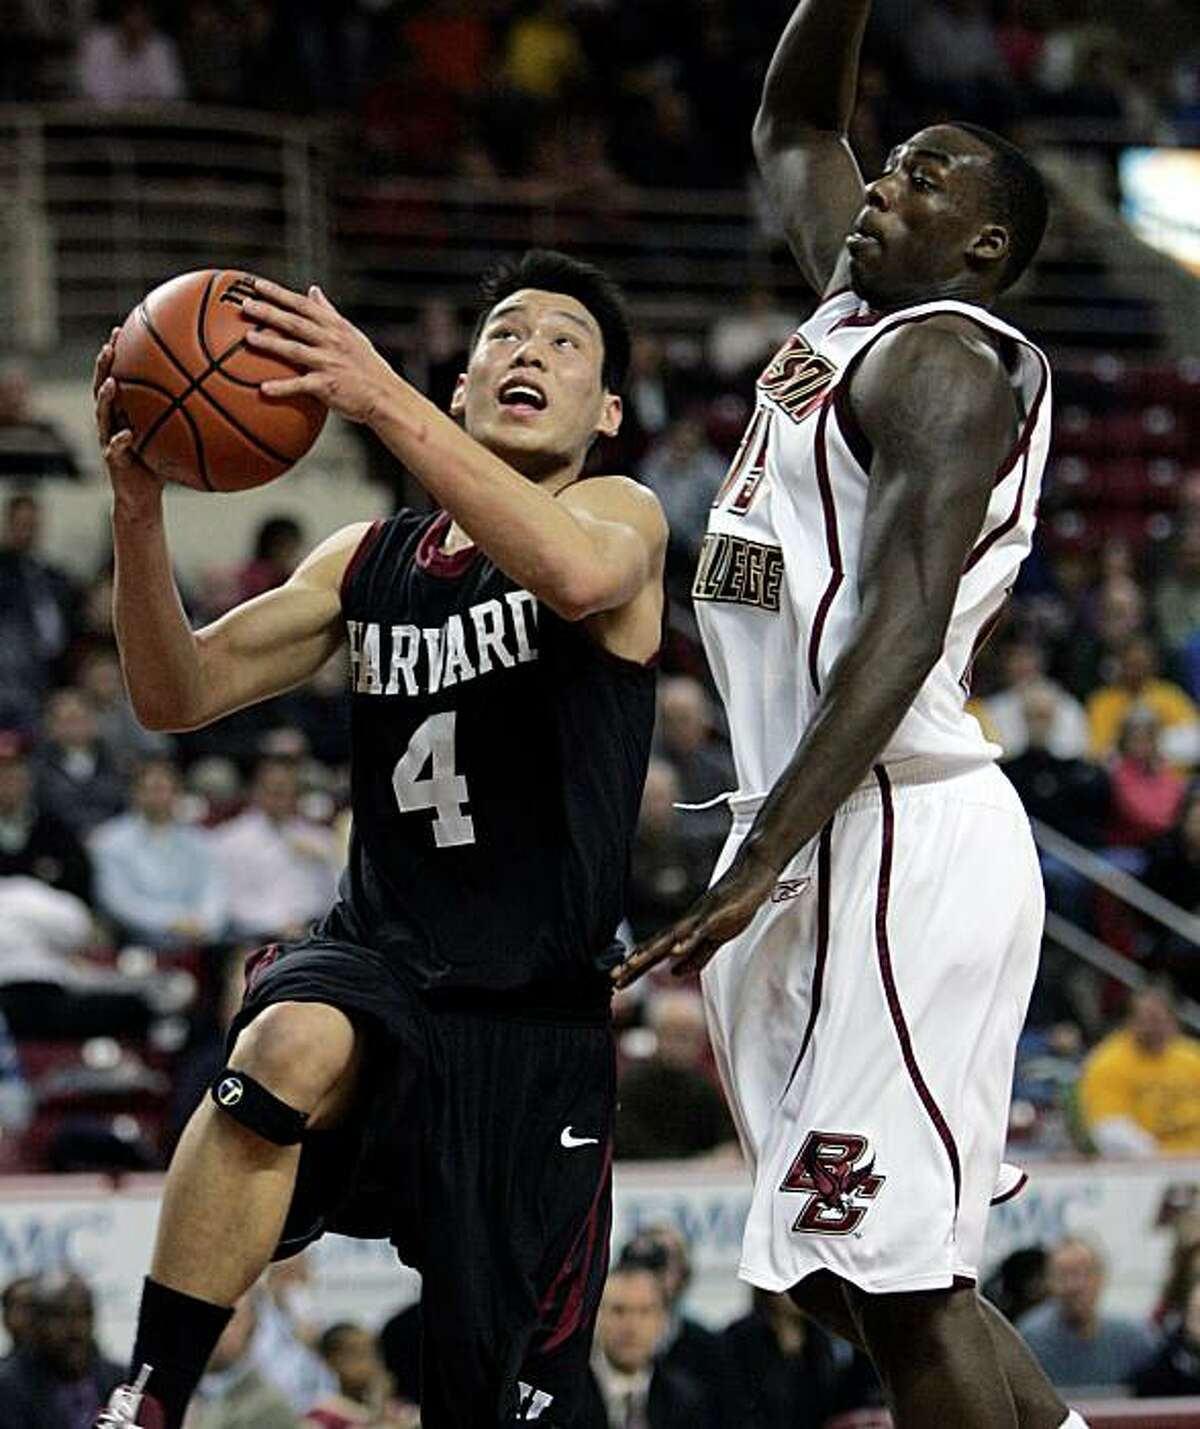 Harvard's Jeremy Lin (4) drives for the basket in front of Boston College's Rakim Sanders in the first half of an NCAA college basketball game on Jan. 7 in Boston.